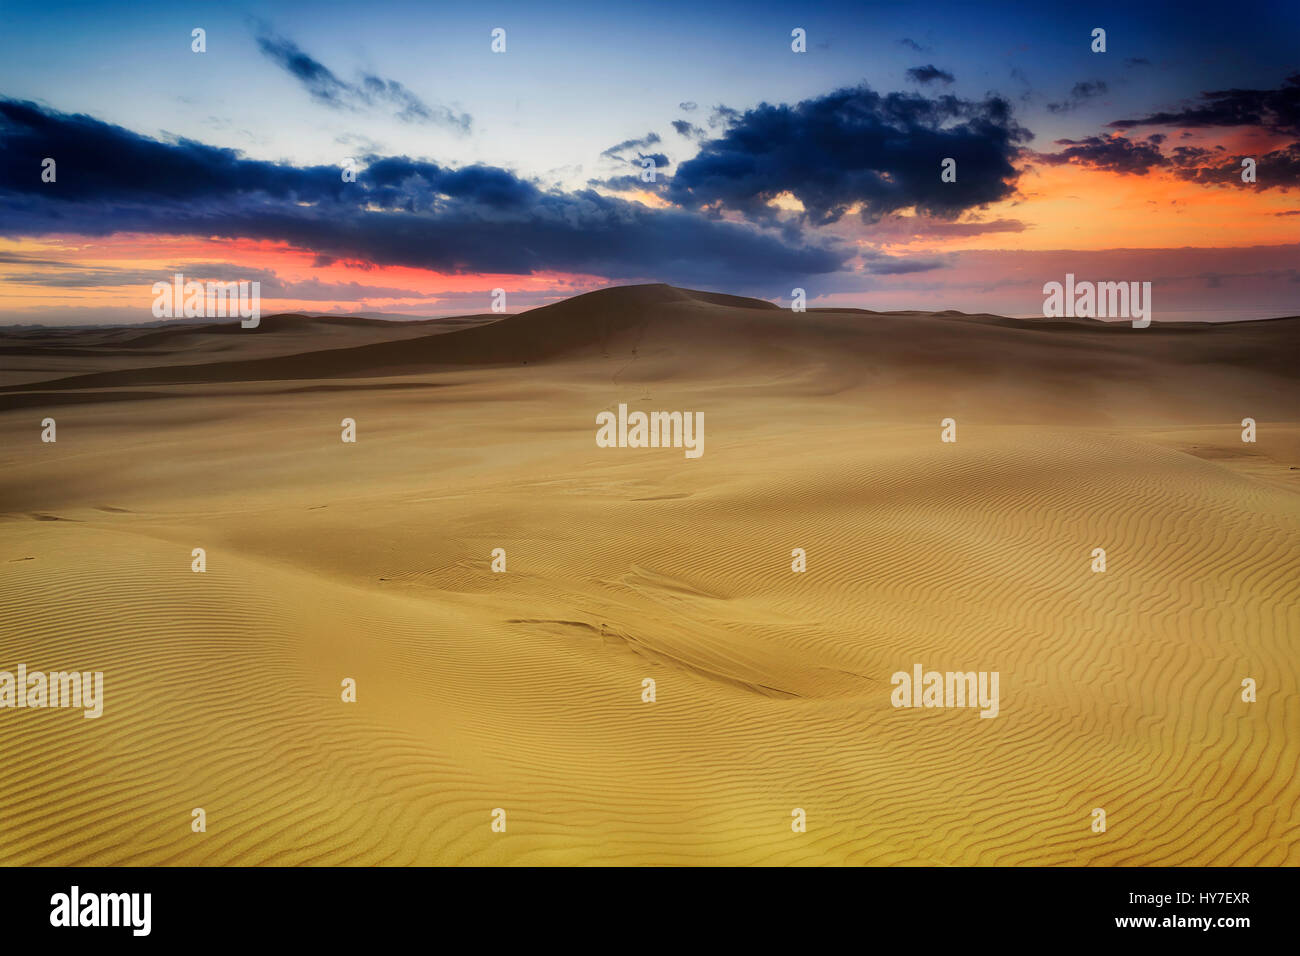 Golden sand dunes at sunrise with ranges of sand hills towards hoziron with red sky near Stockon beach , NSW, AUstralia. - Stock Image